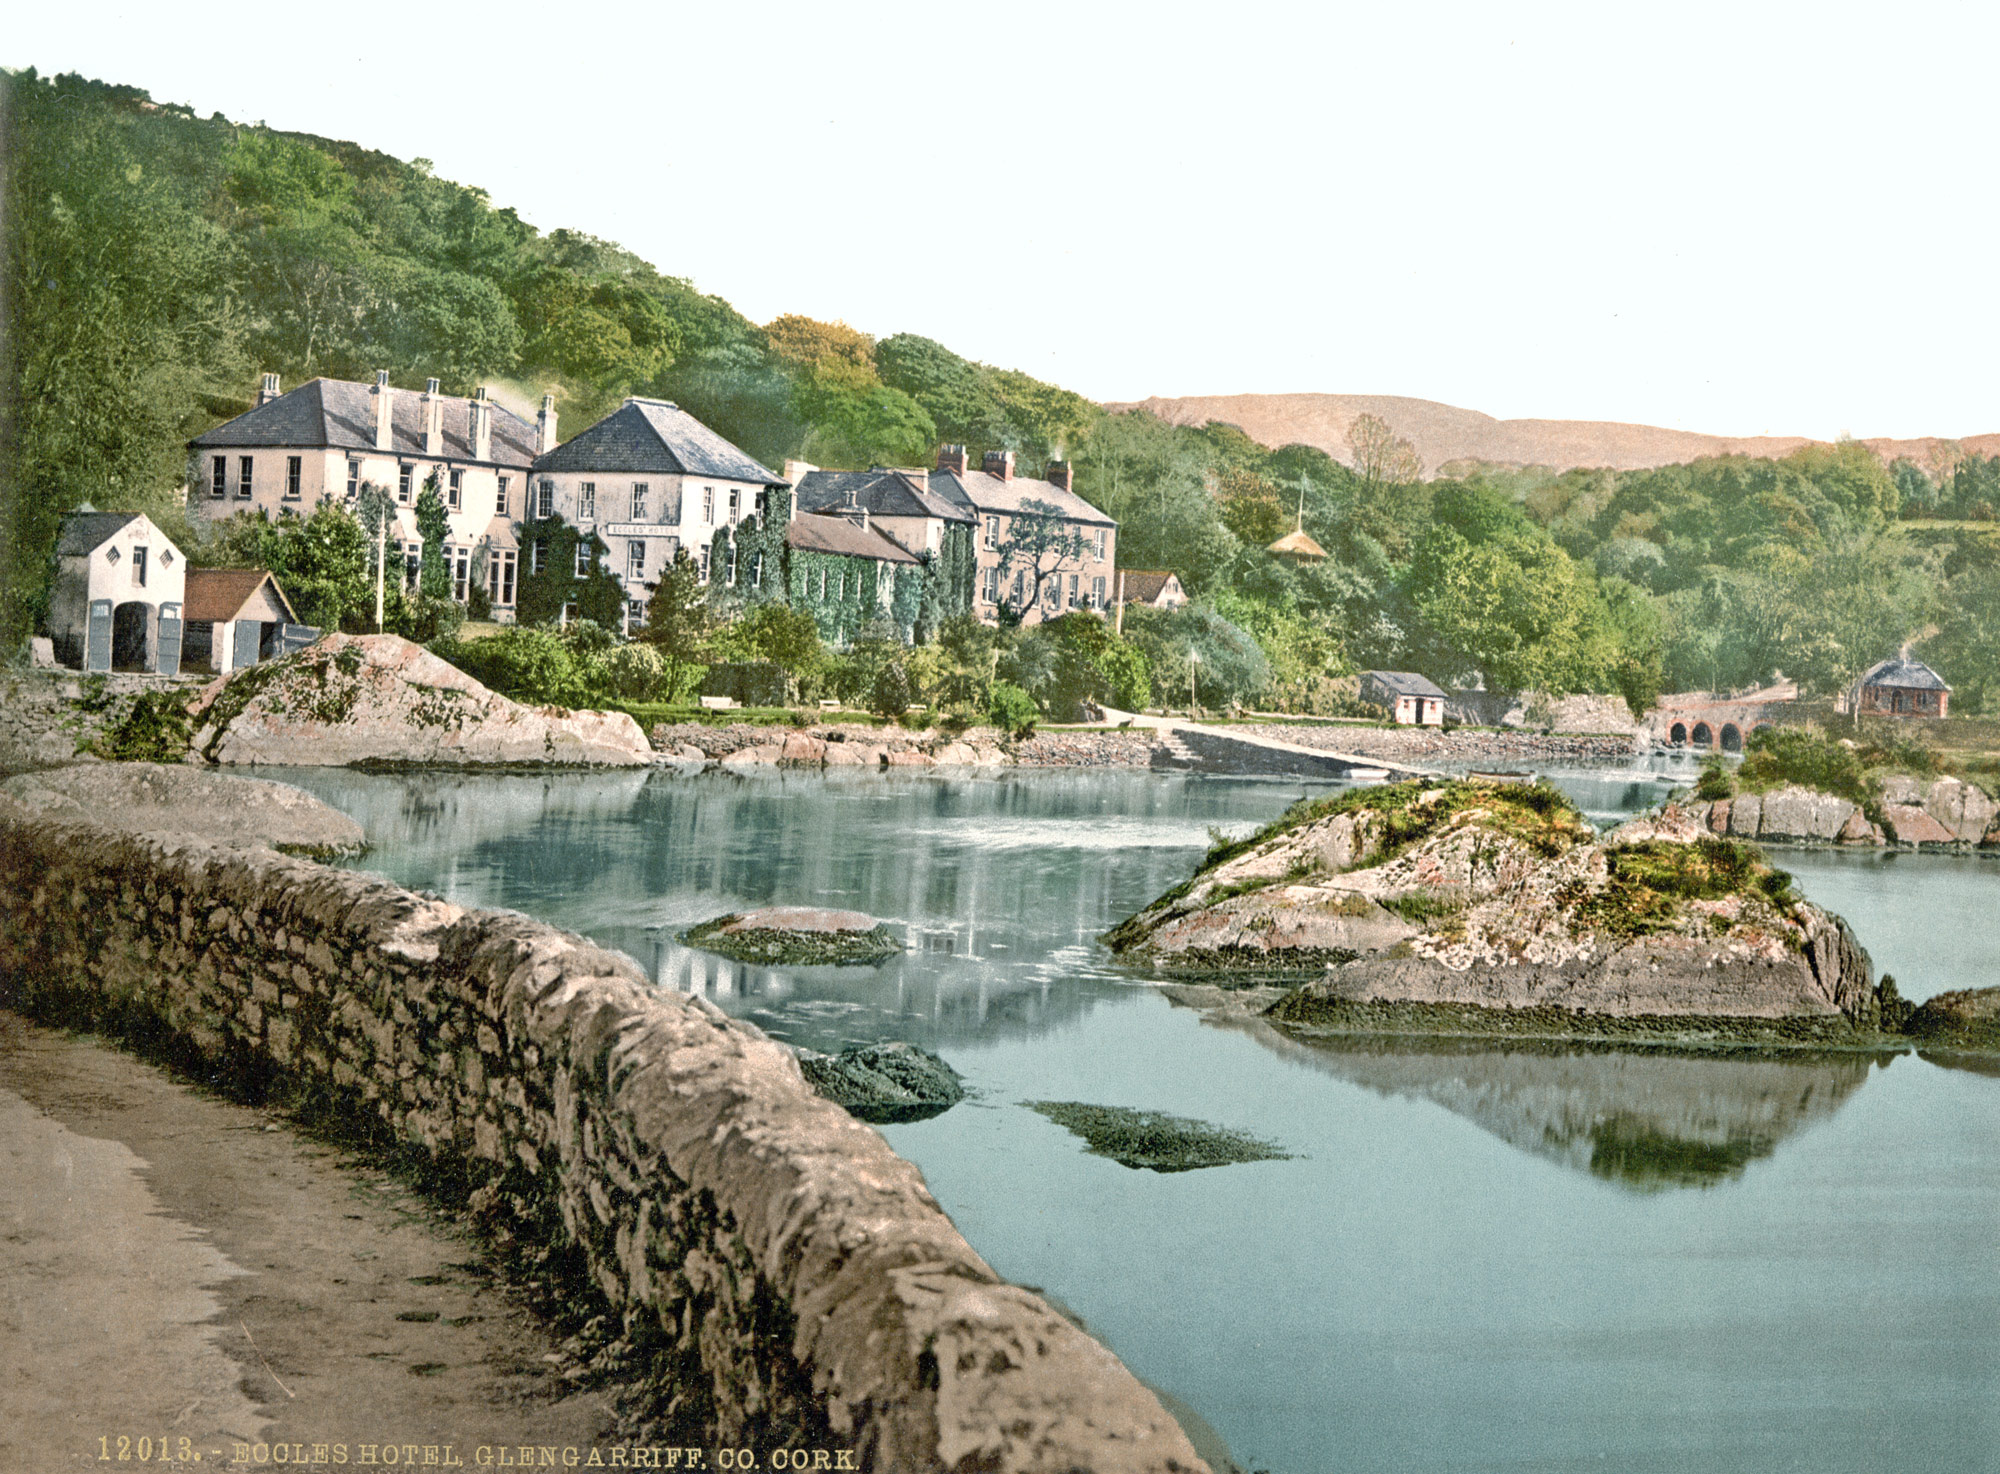 postcard of the Eccles Hotel in Glengariff